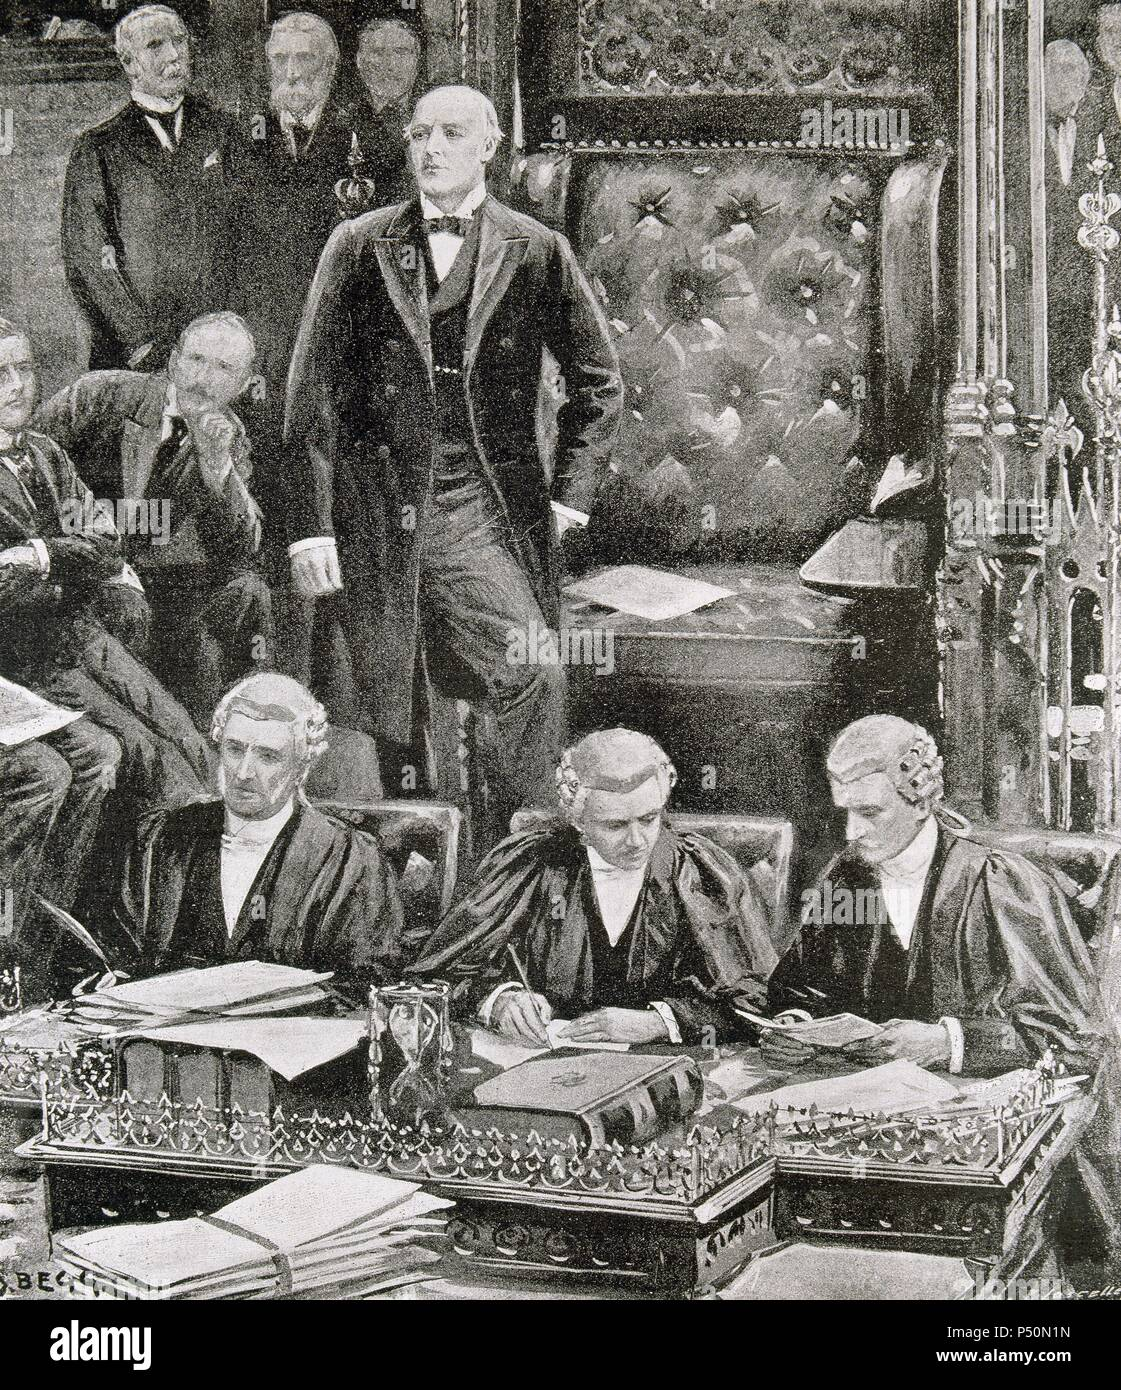 History of England. 20th century. Opening session of the British Parliament. M. Gully thanking the members of Parliament before taking a seat in the Presidency. Engraving 'The Spanish and American Illustration,' 1900. - Stock Image